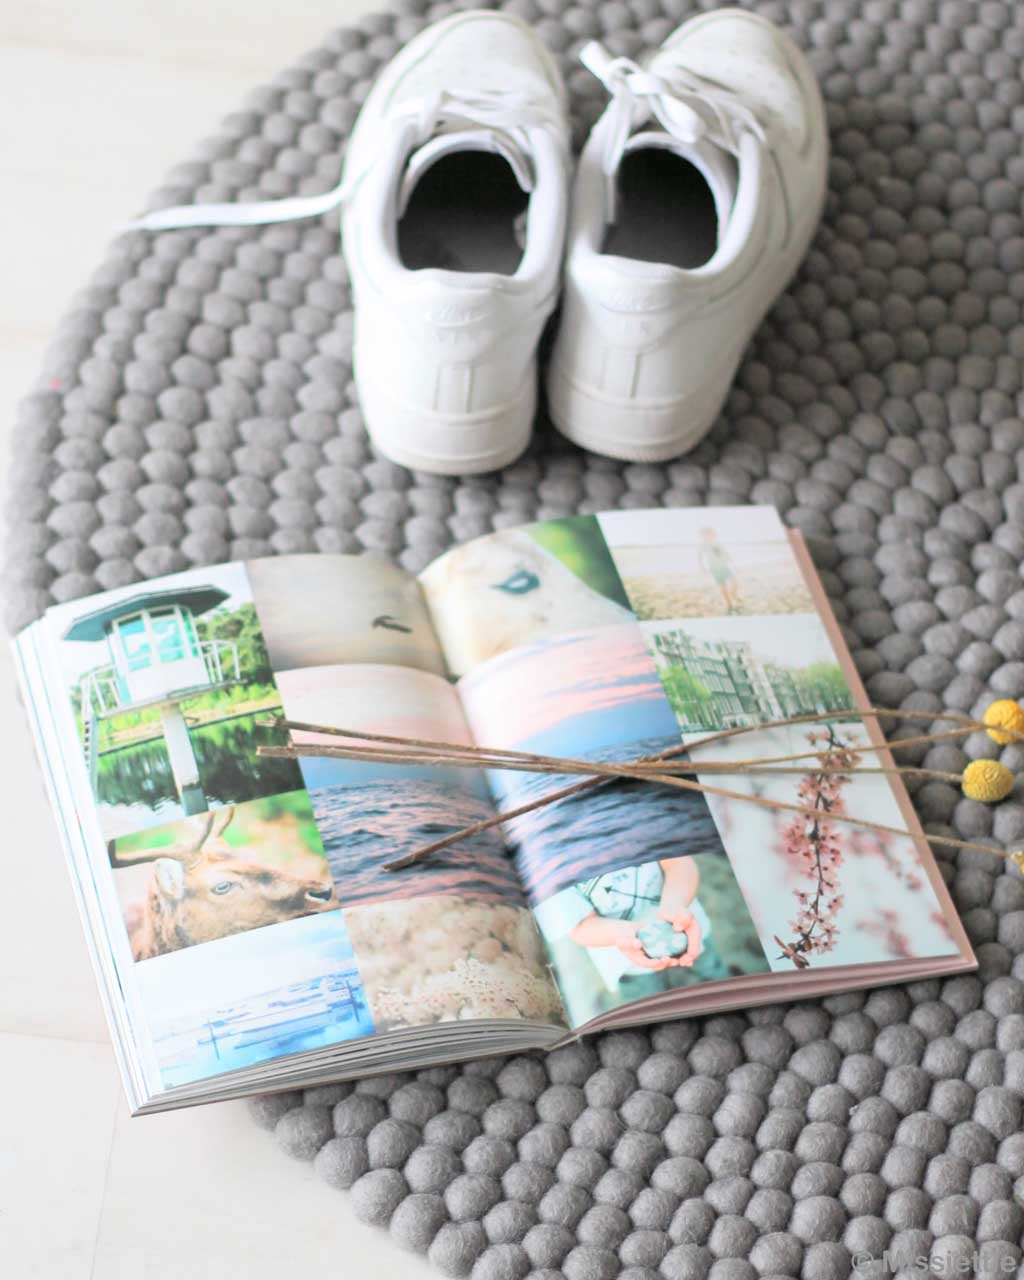 book and magazine with pictures made by nepalian rugs